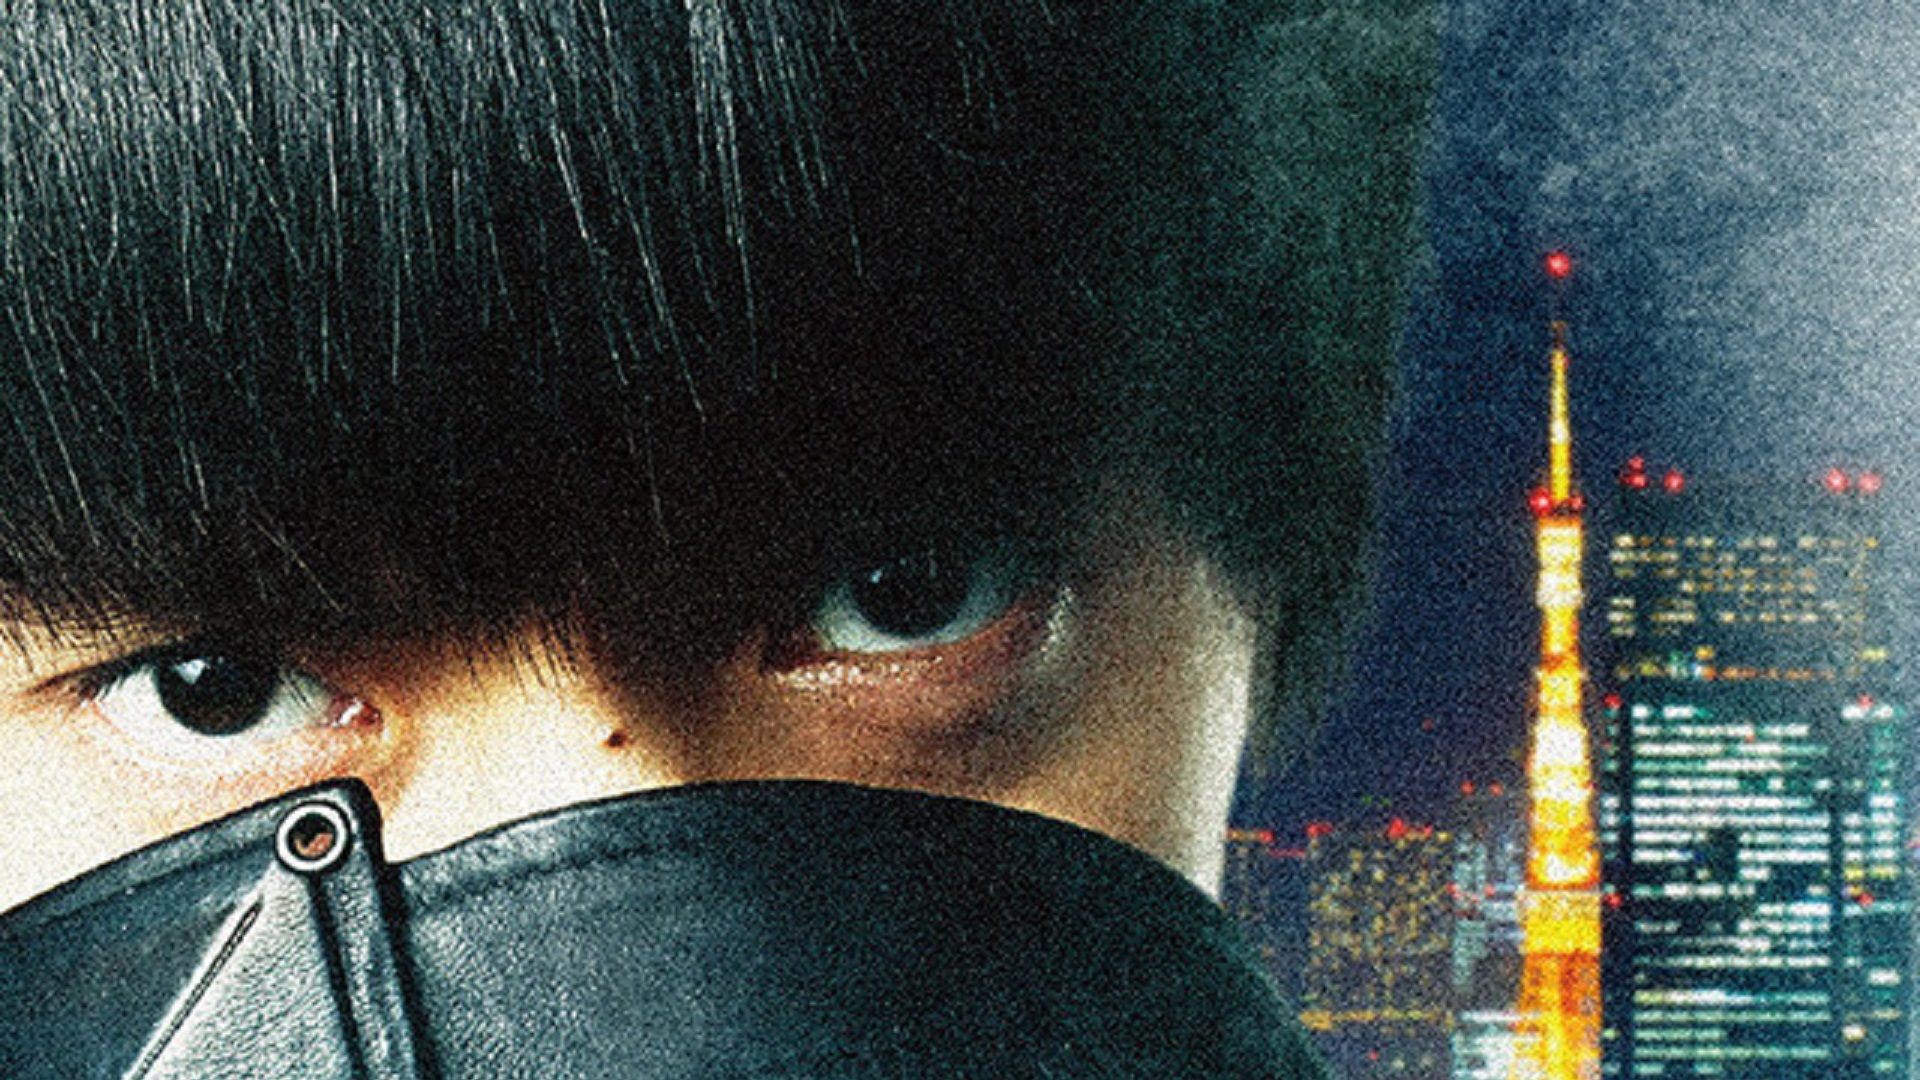 First Images Appear For Tokyo Ghoul Live Action Film Geektyrant